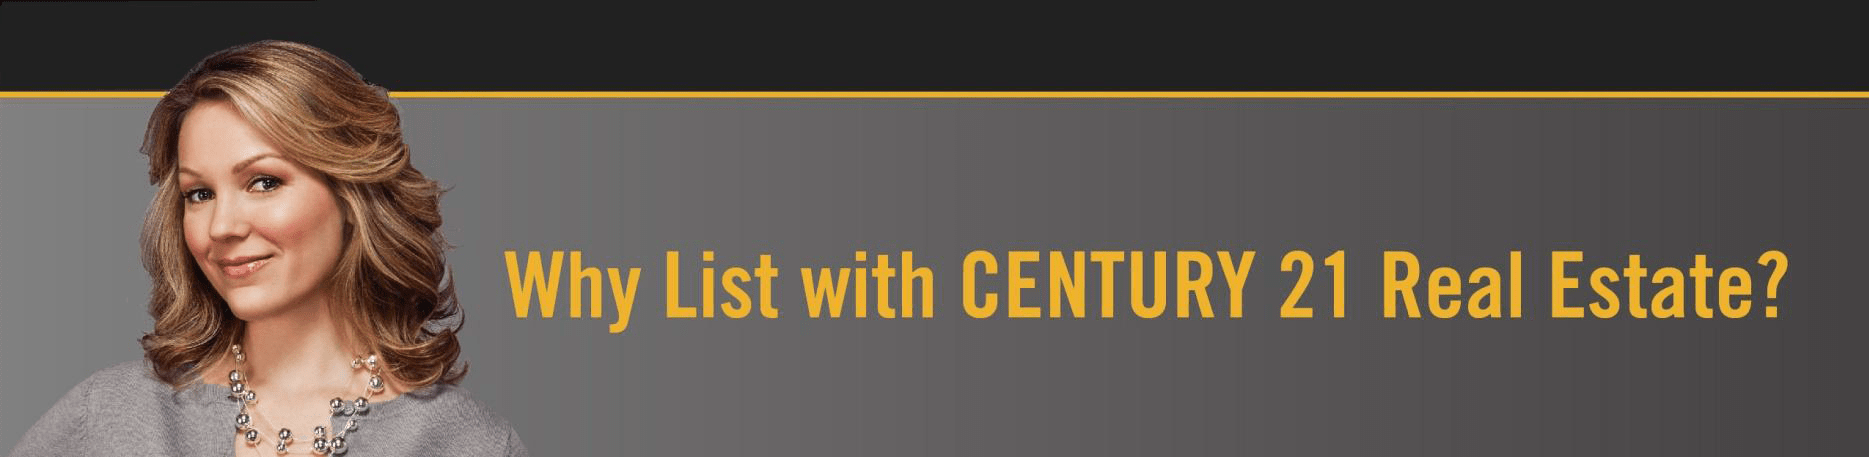 Why list your home for sale with CENTURY 21 MarketLink Realty?